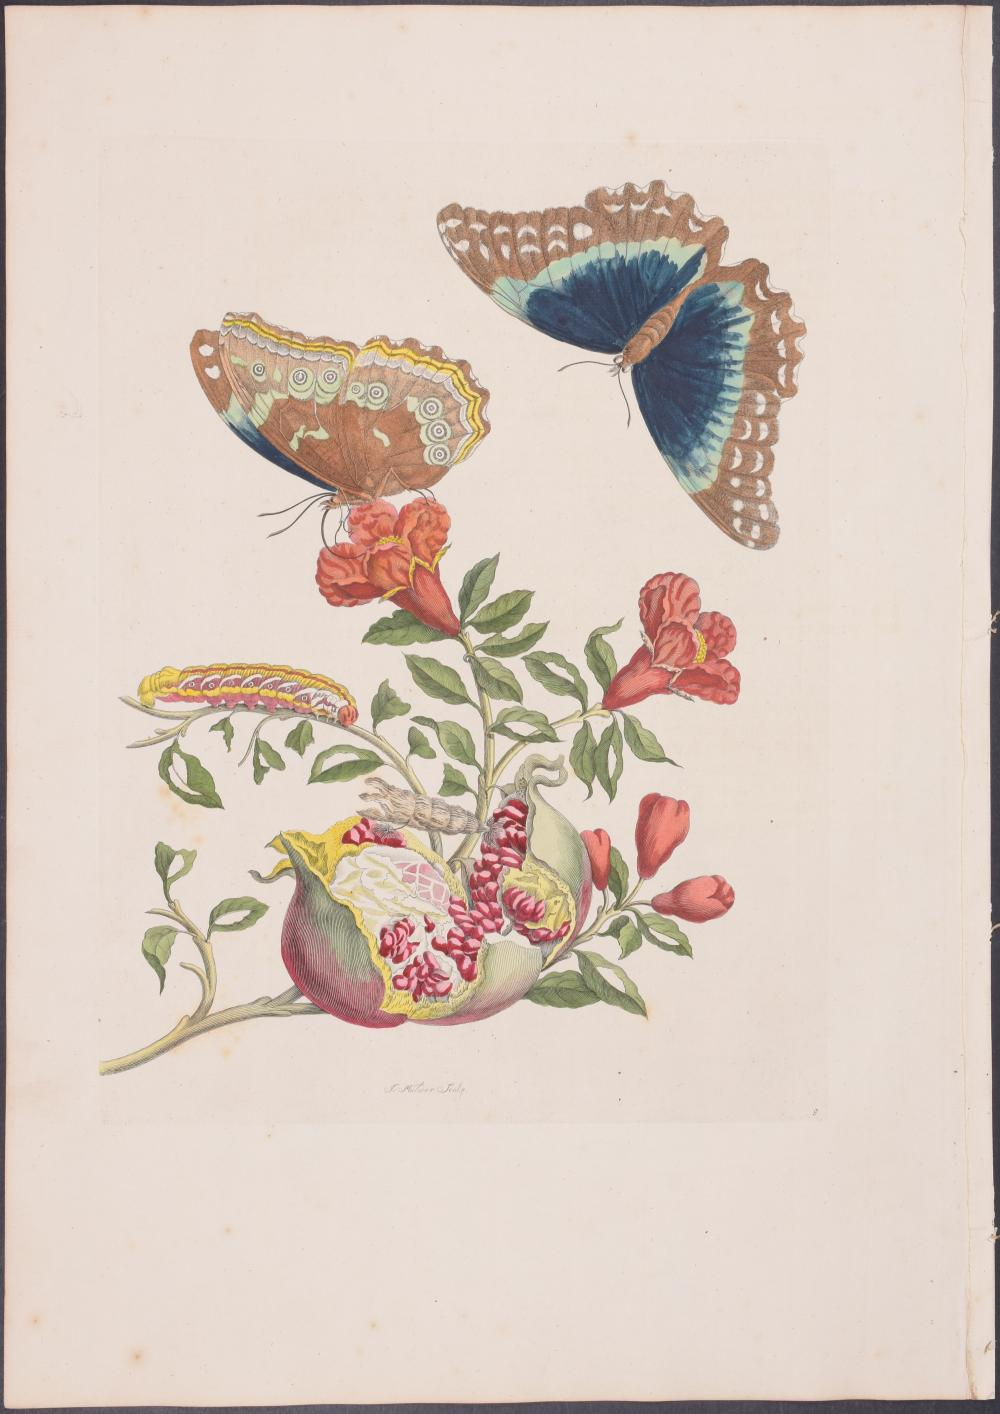 Lot 11190: Merian, Folio - Pomegranate & Butterfly Metamorphosis. 9